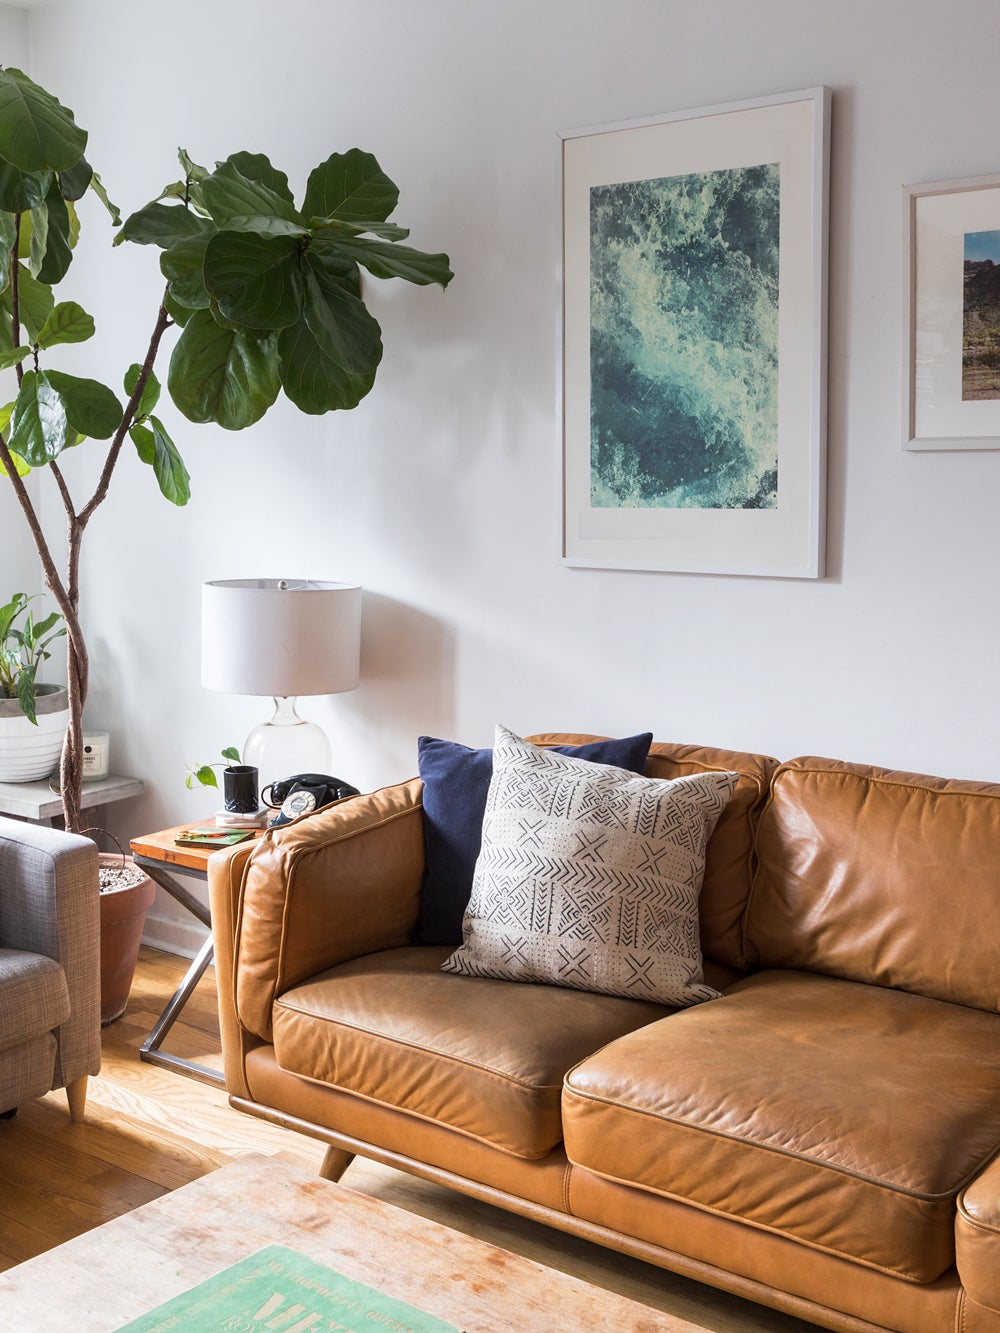 This Bachelor Pad Staple Is Finally Getting a Makeover